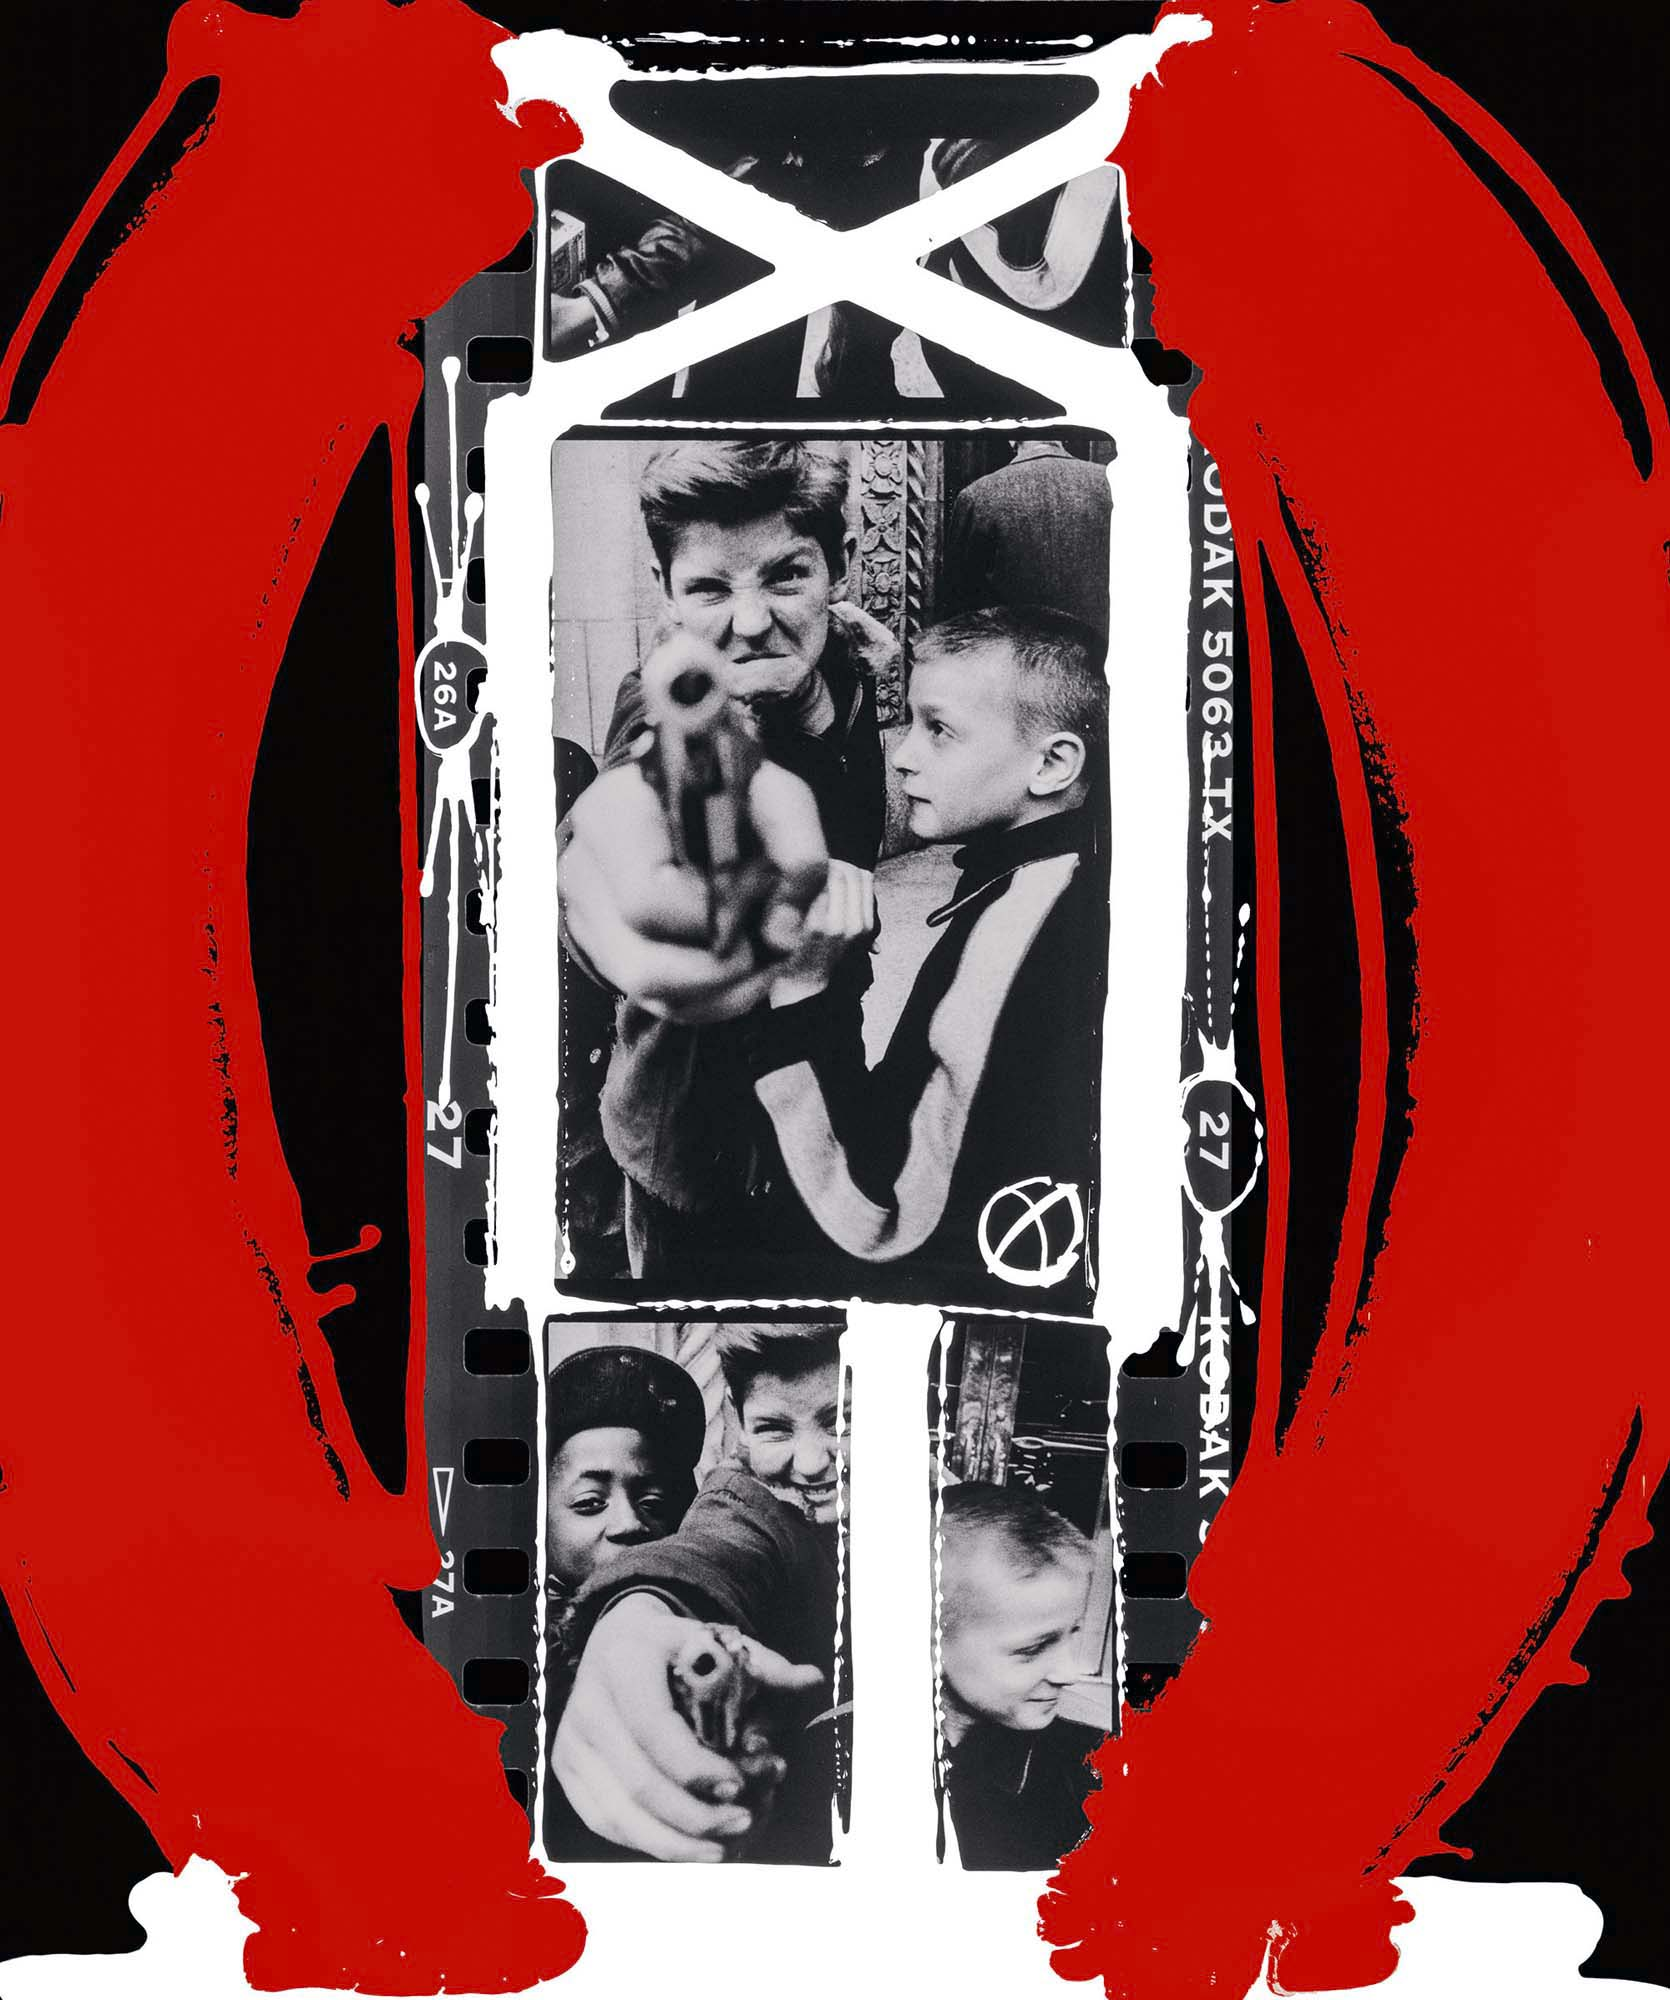 Gun 1, New York 1954-2004-William Klein-HackelBury Fine Art London-black and white photographs of kids with toy gun and red and white paint around